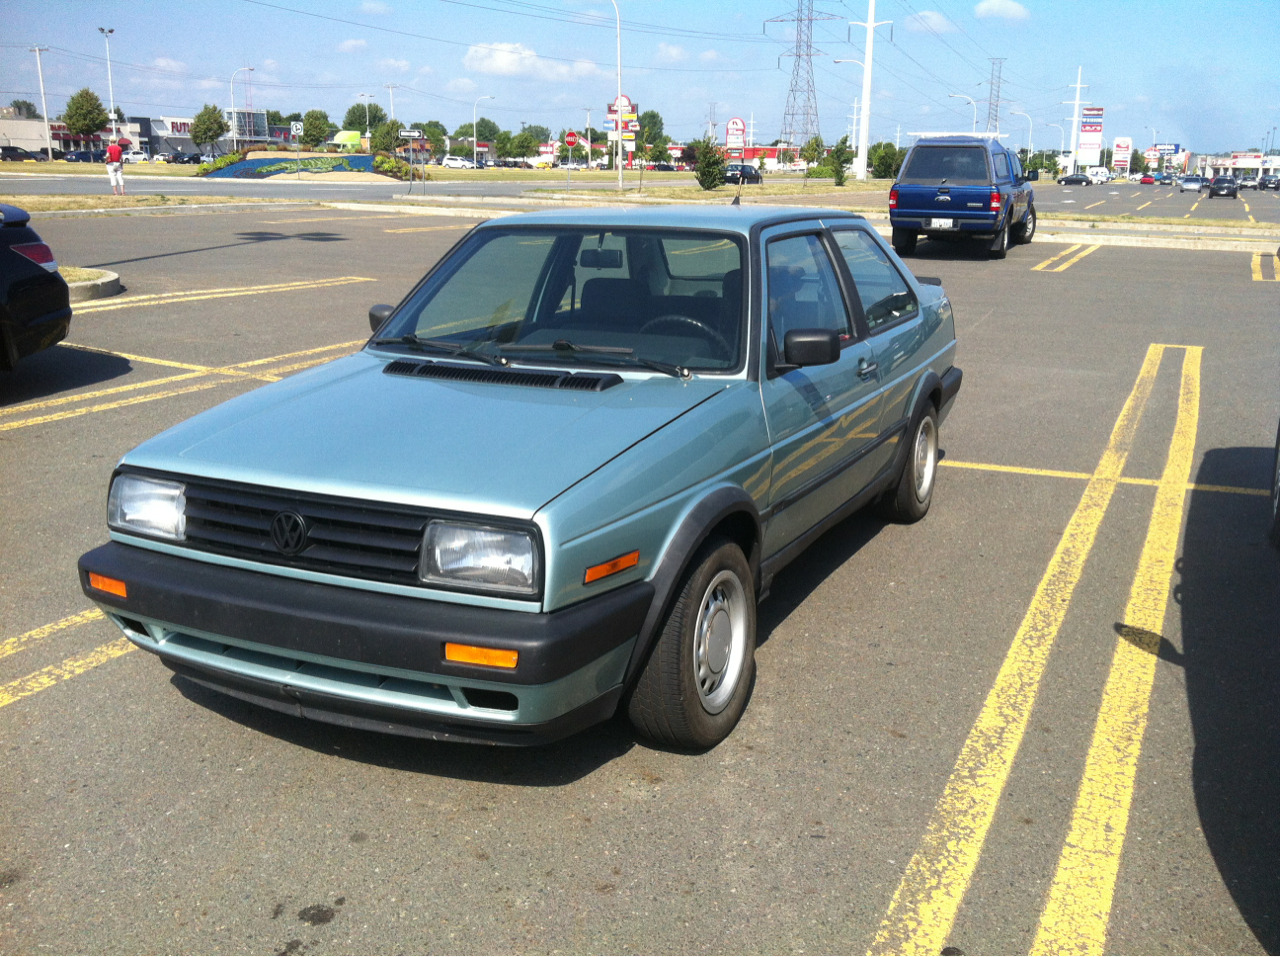 Clean as hell Jetta Coupe in Calypso green, spotted locally. Minty fresh and mostly OEM from what I could tell… A beautiful specimen.